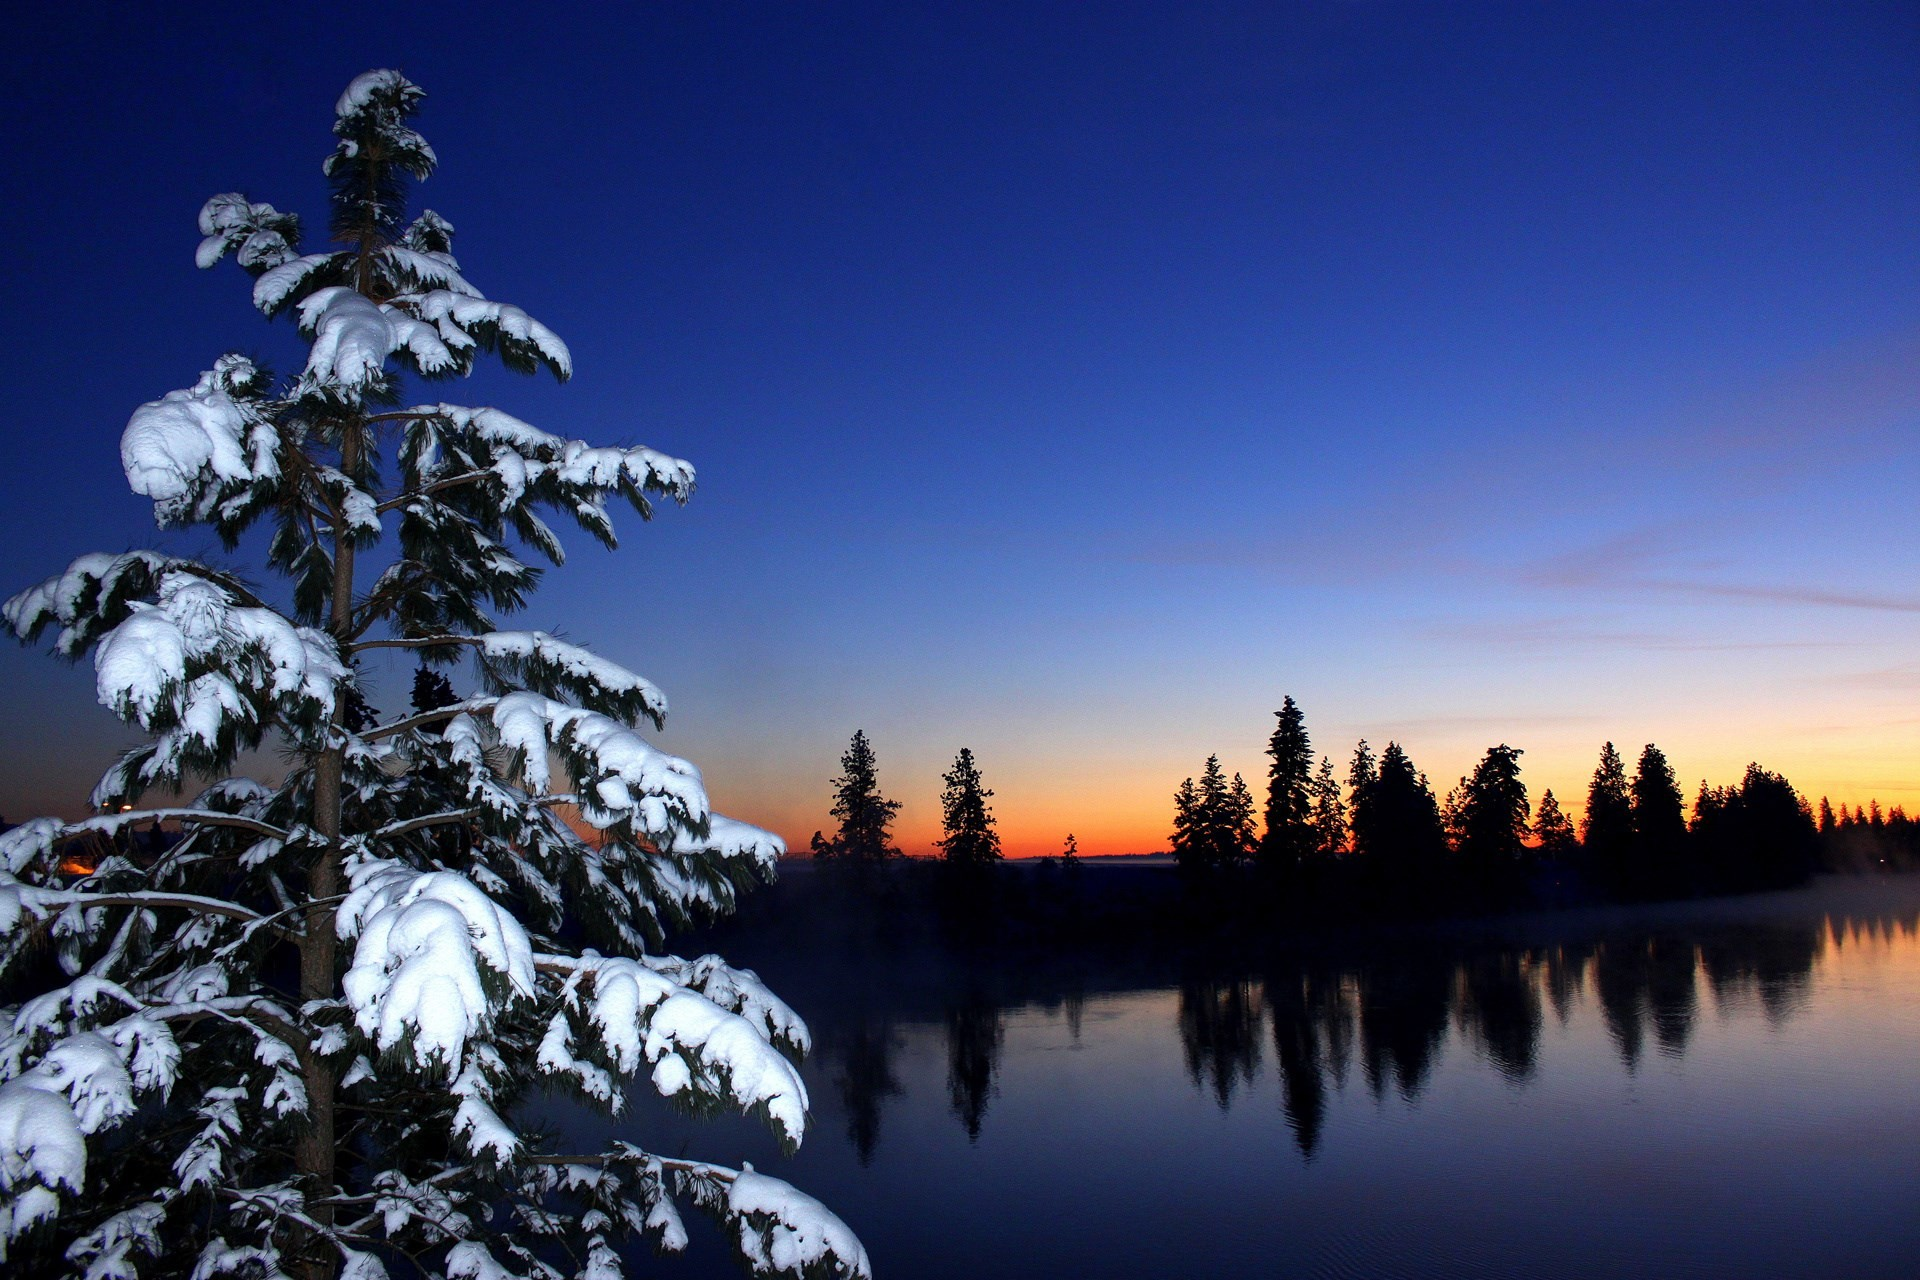 1920x1280 winter theme background images,  (537 kB)